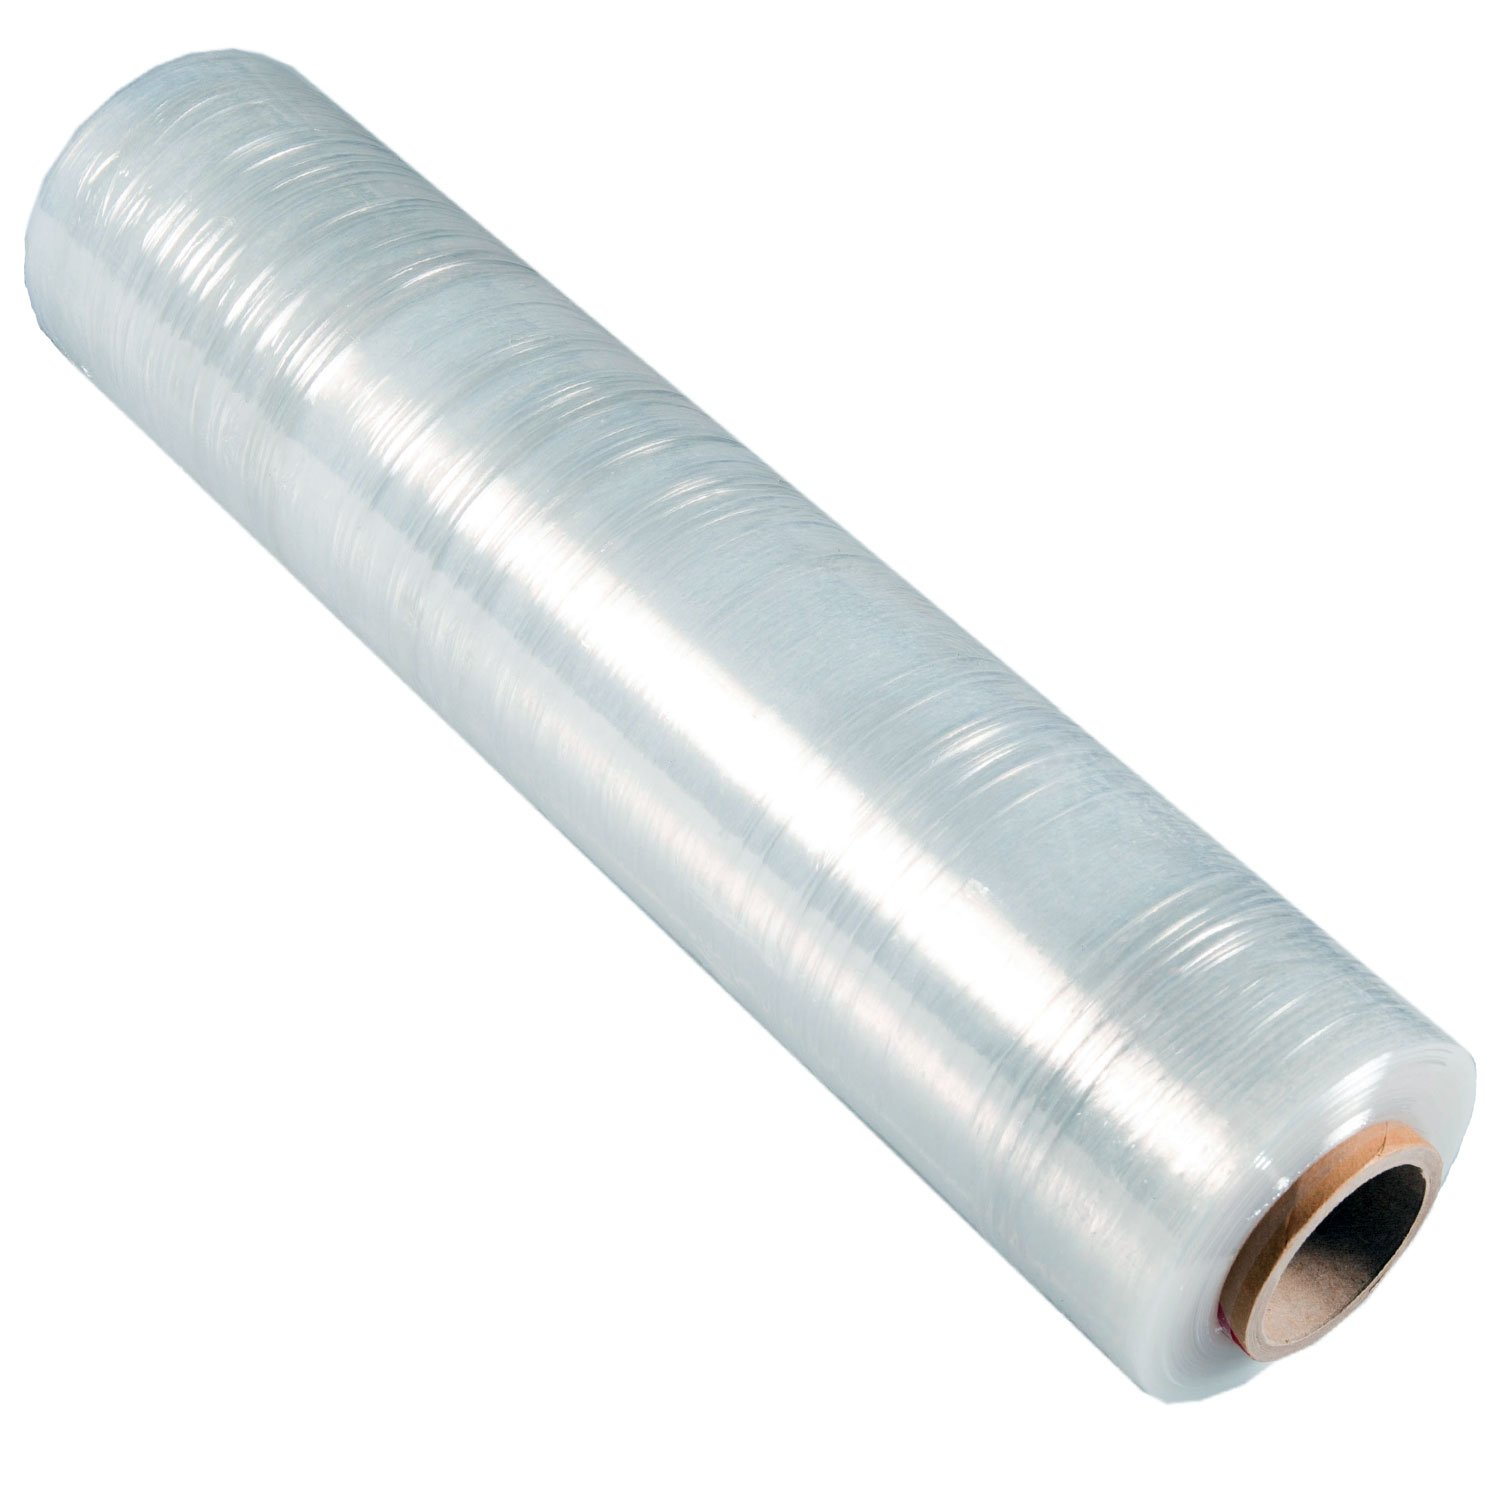 LTB 2070 Stretch Wrap Film, 70 Gauge, 18'' x 1500 Ft Per Roll, Clear (Pack of 4) by LTB MFG (Image #4)